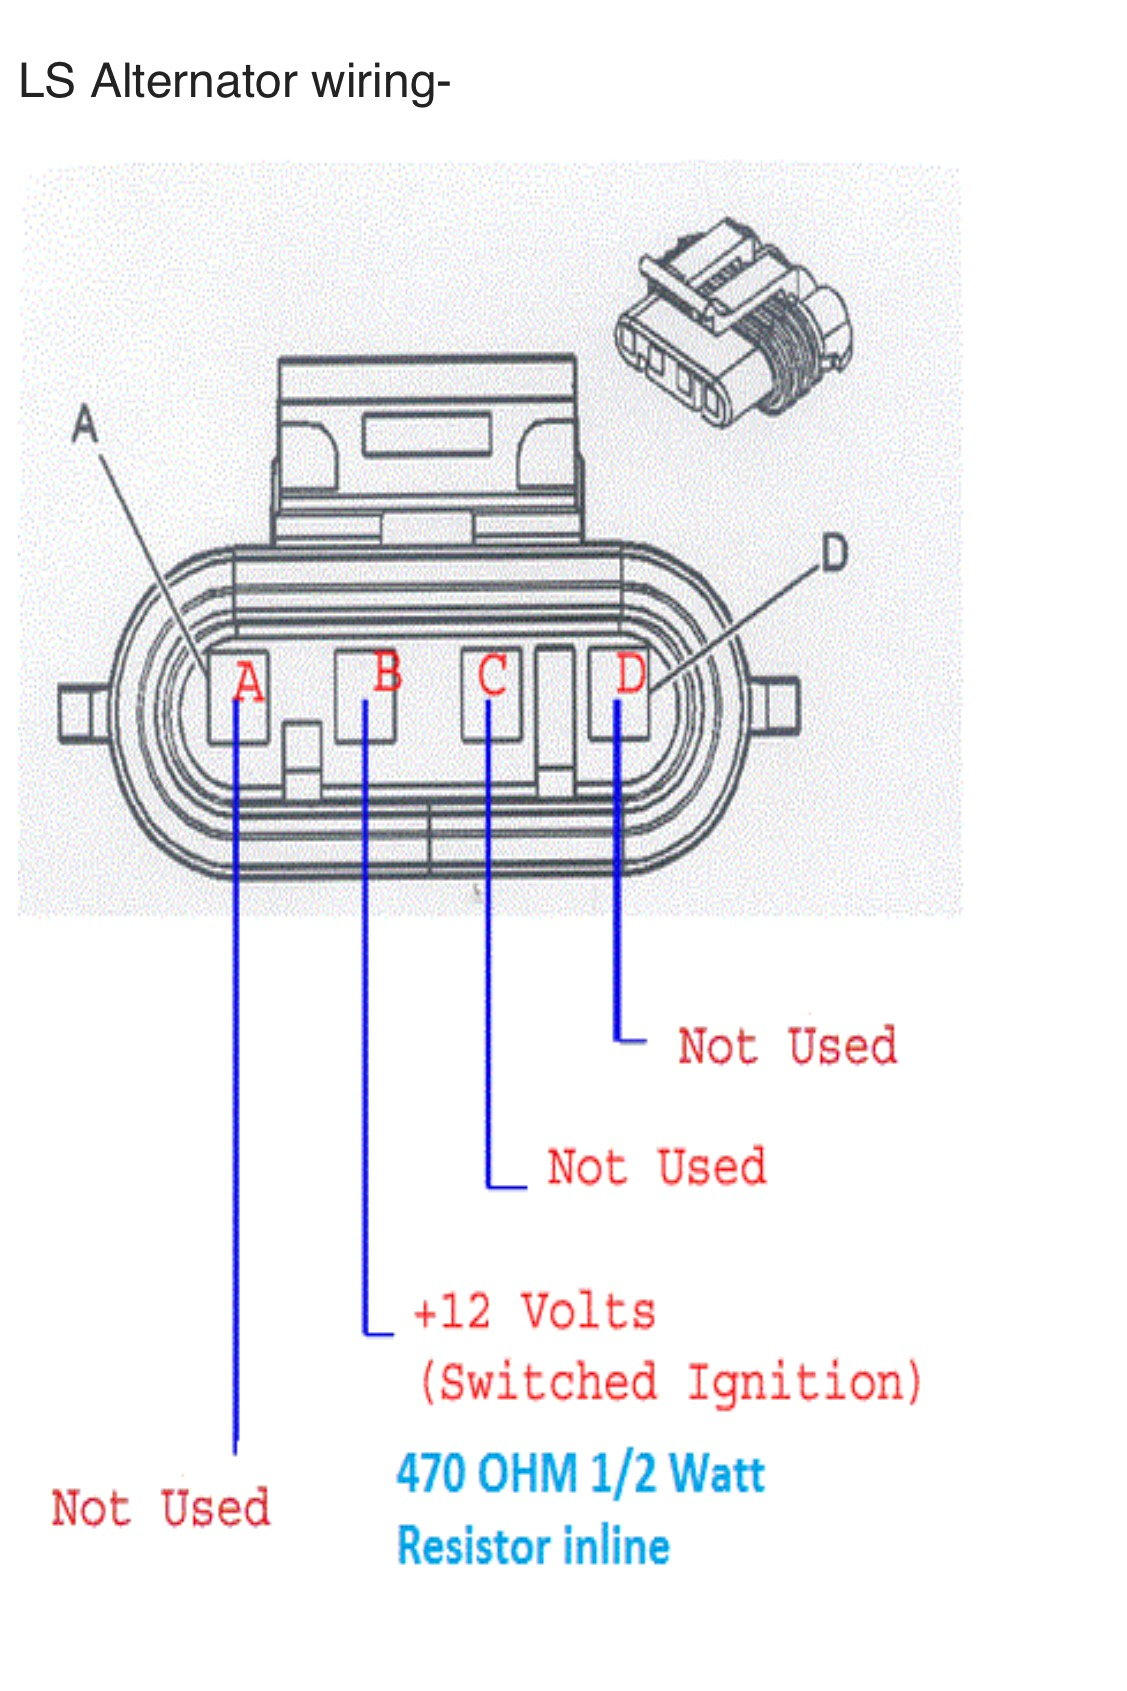 img_9979_png_90ee84277fba124a16caa3e0ccac0efb576b5fea  Camaro Wiring Diagram on chevy tail light, instrument cluster,